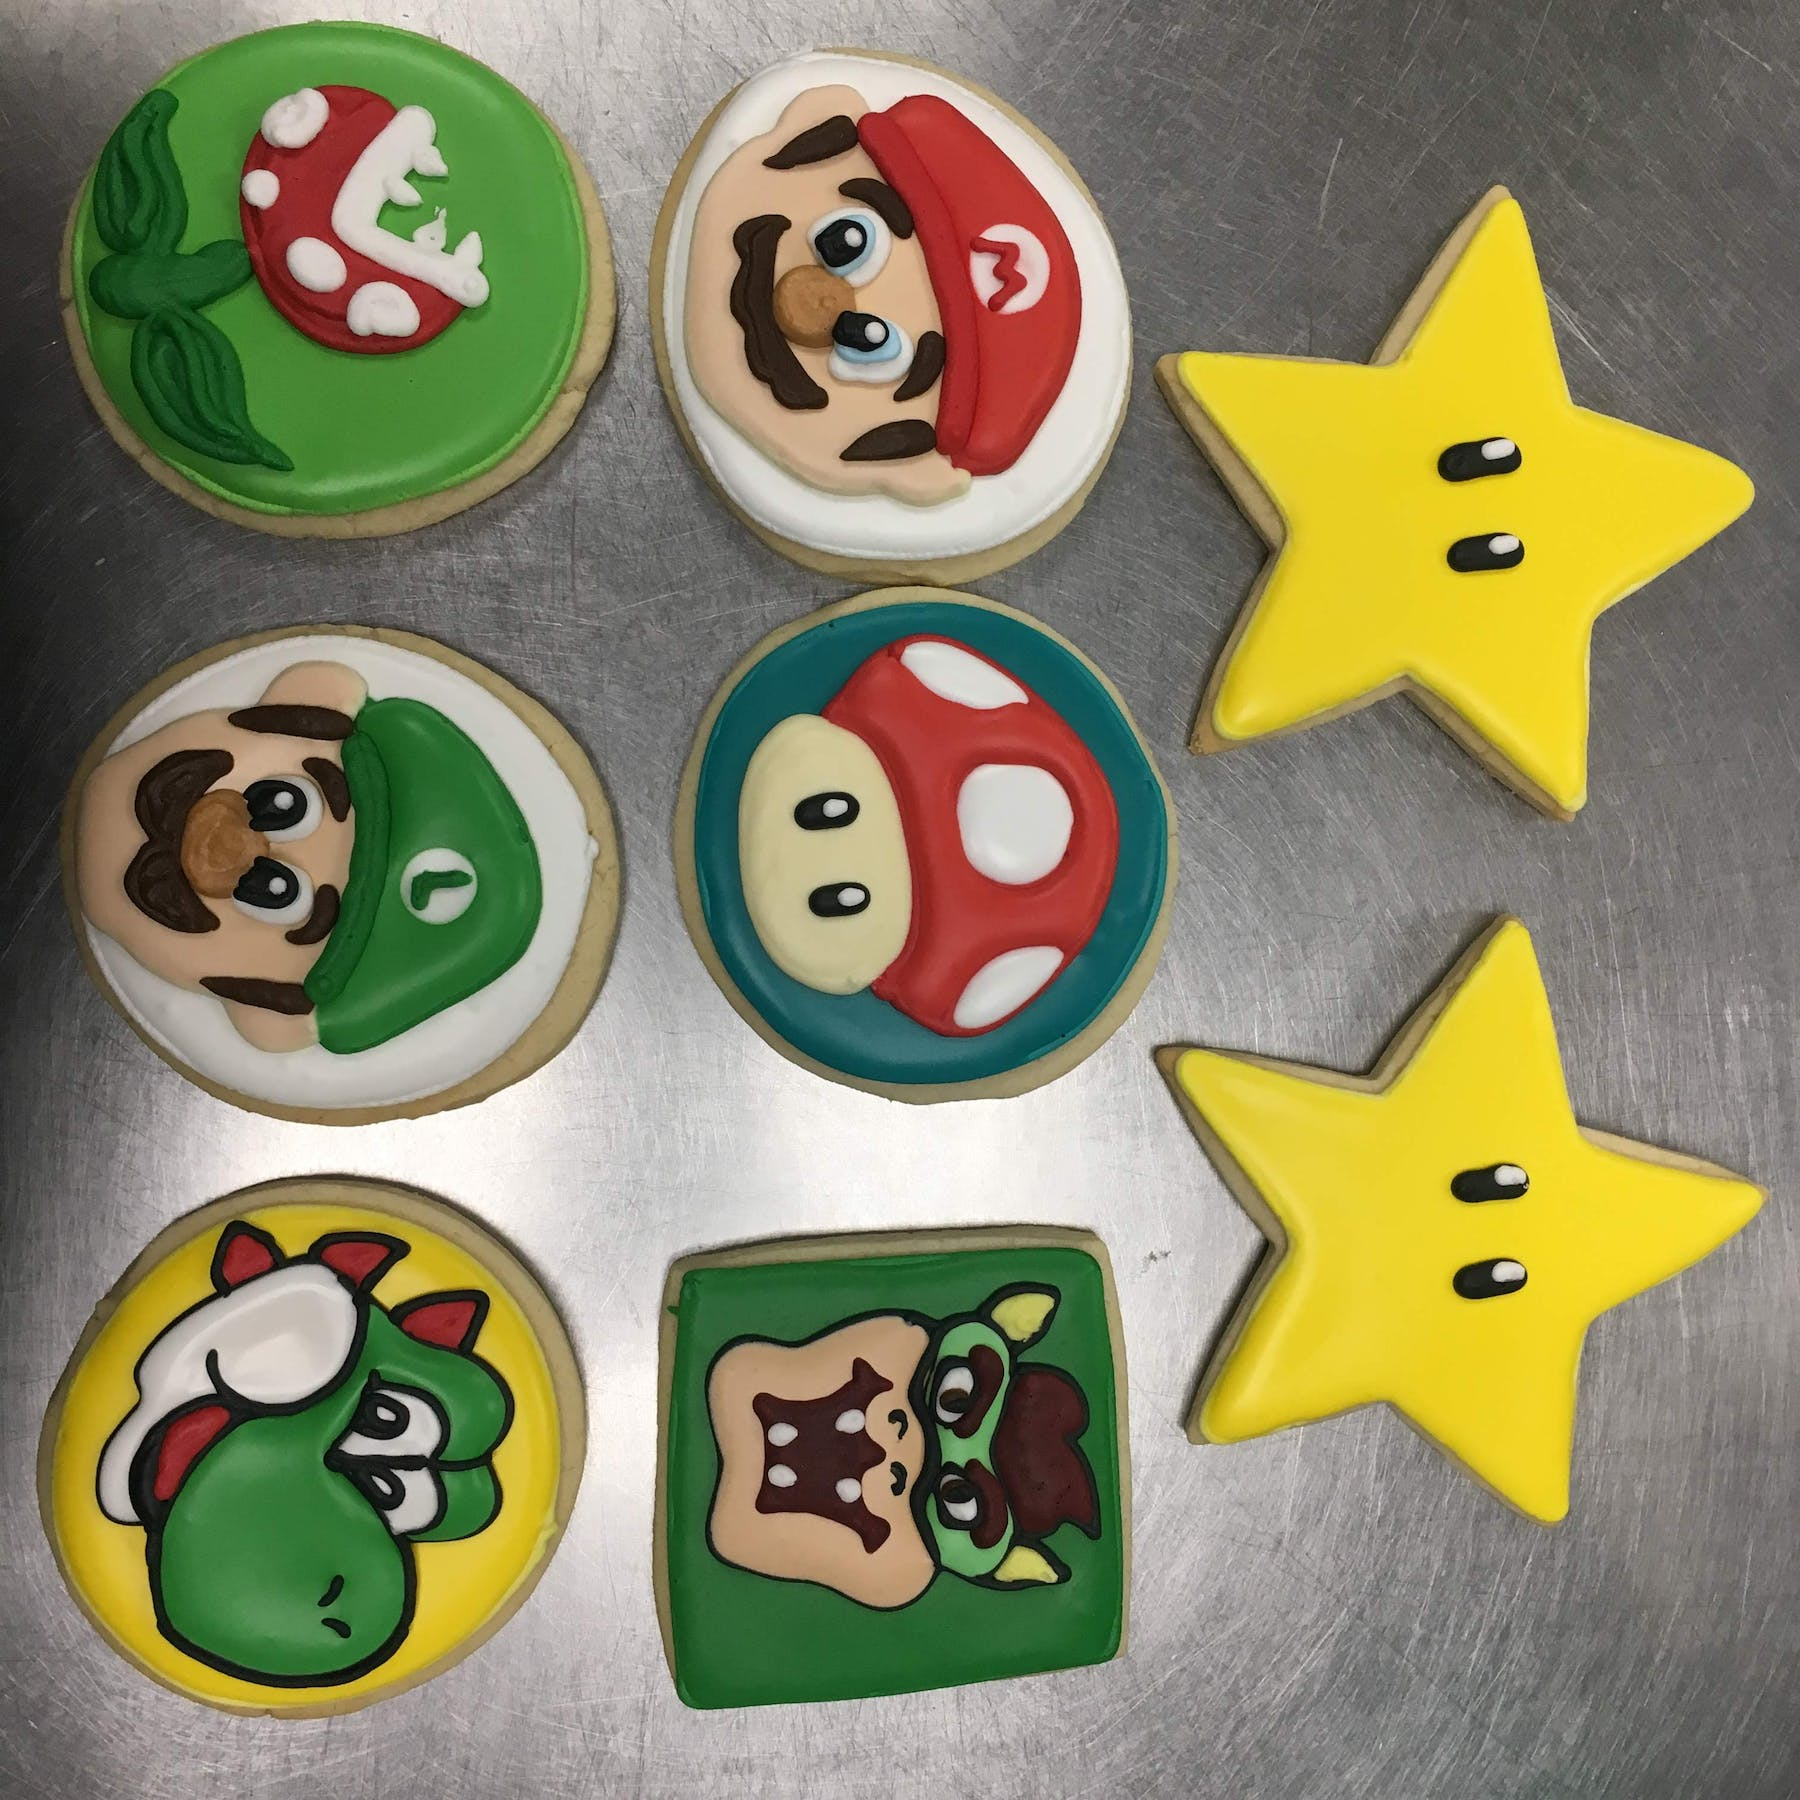 Super Mario themed cookies